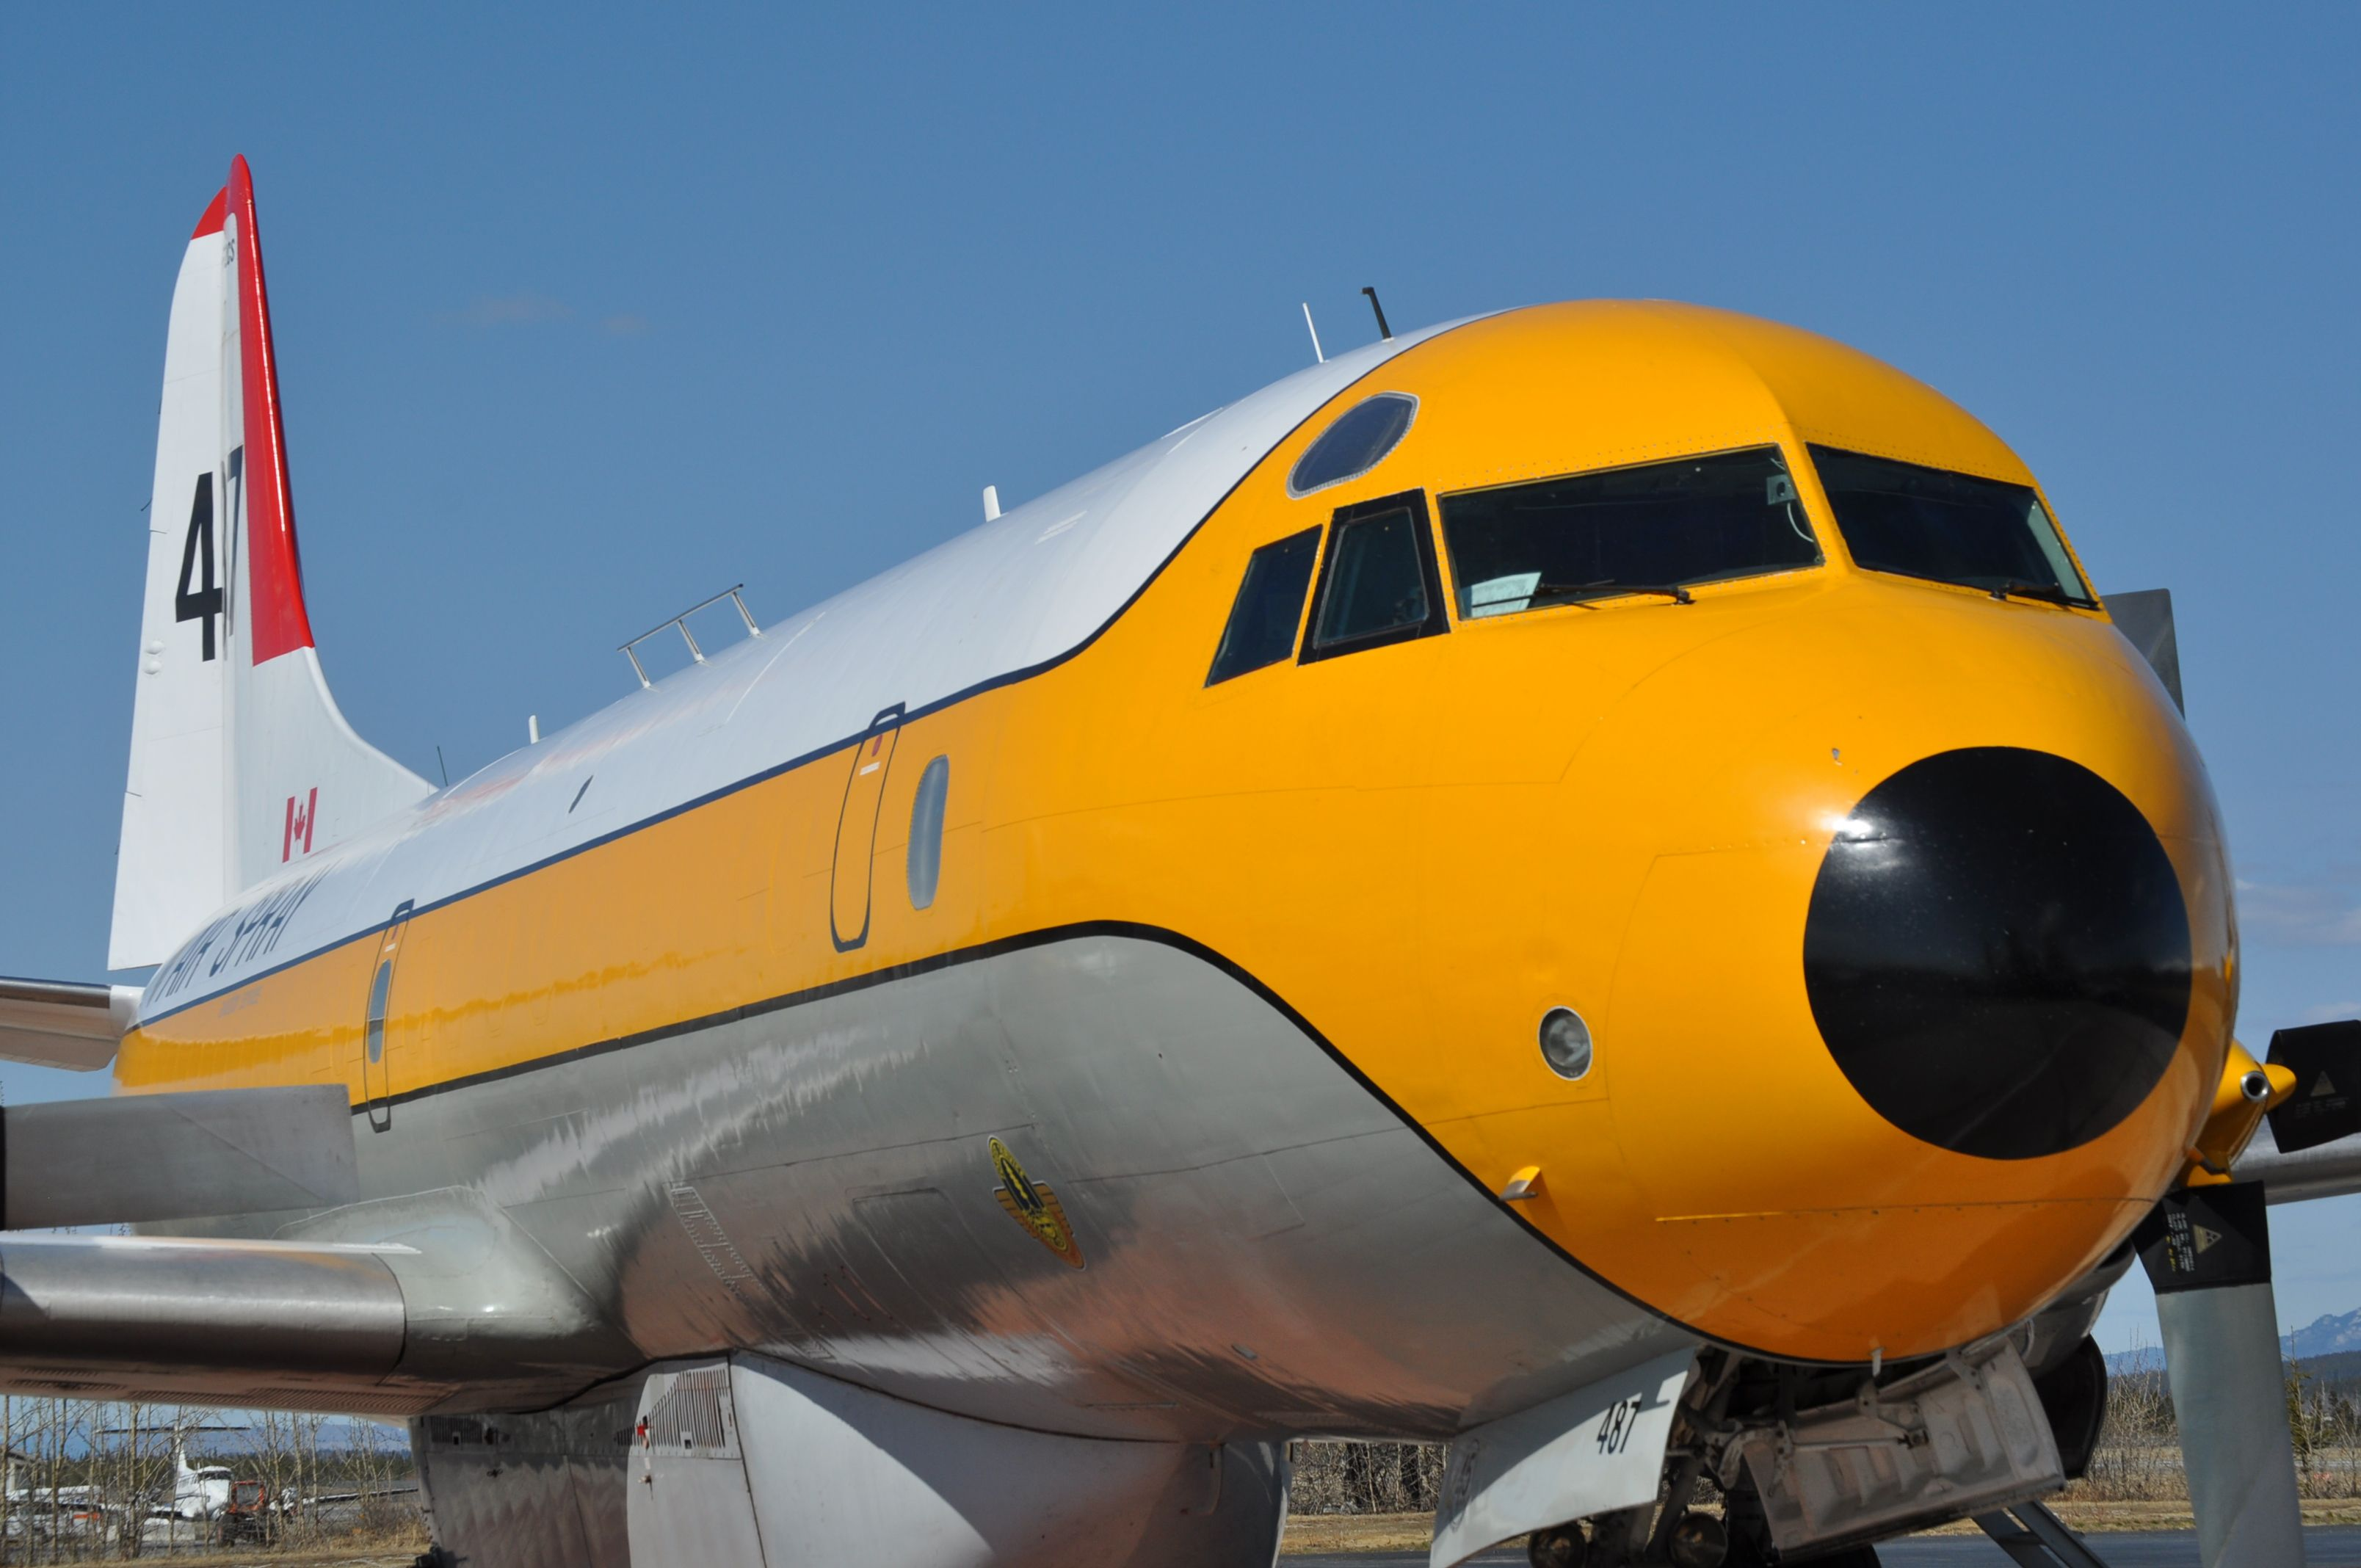 The Lockheed L188 Electra Air Tanker Aviao